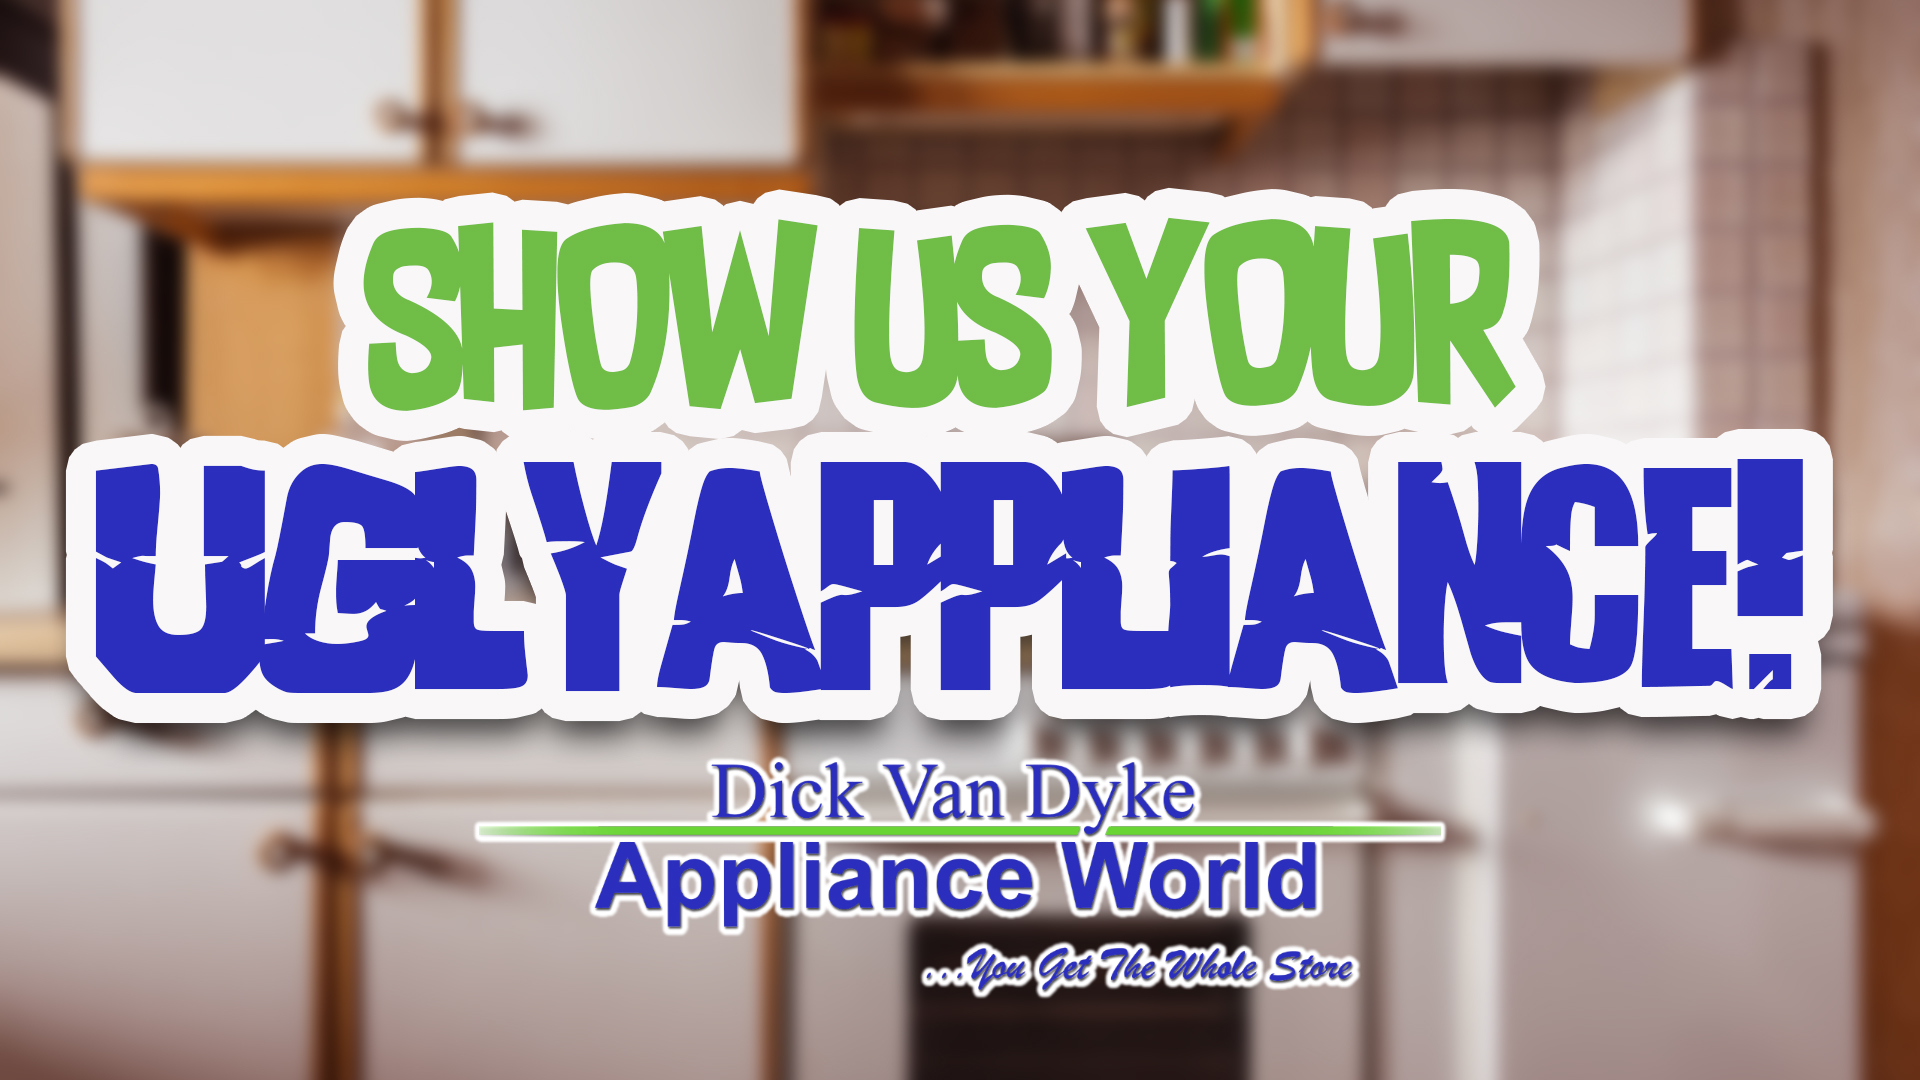 Feature: https://www.wnns.com/appliance/